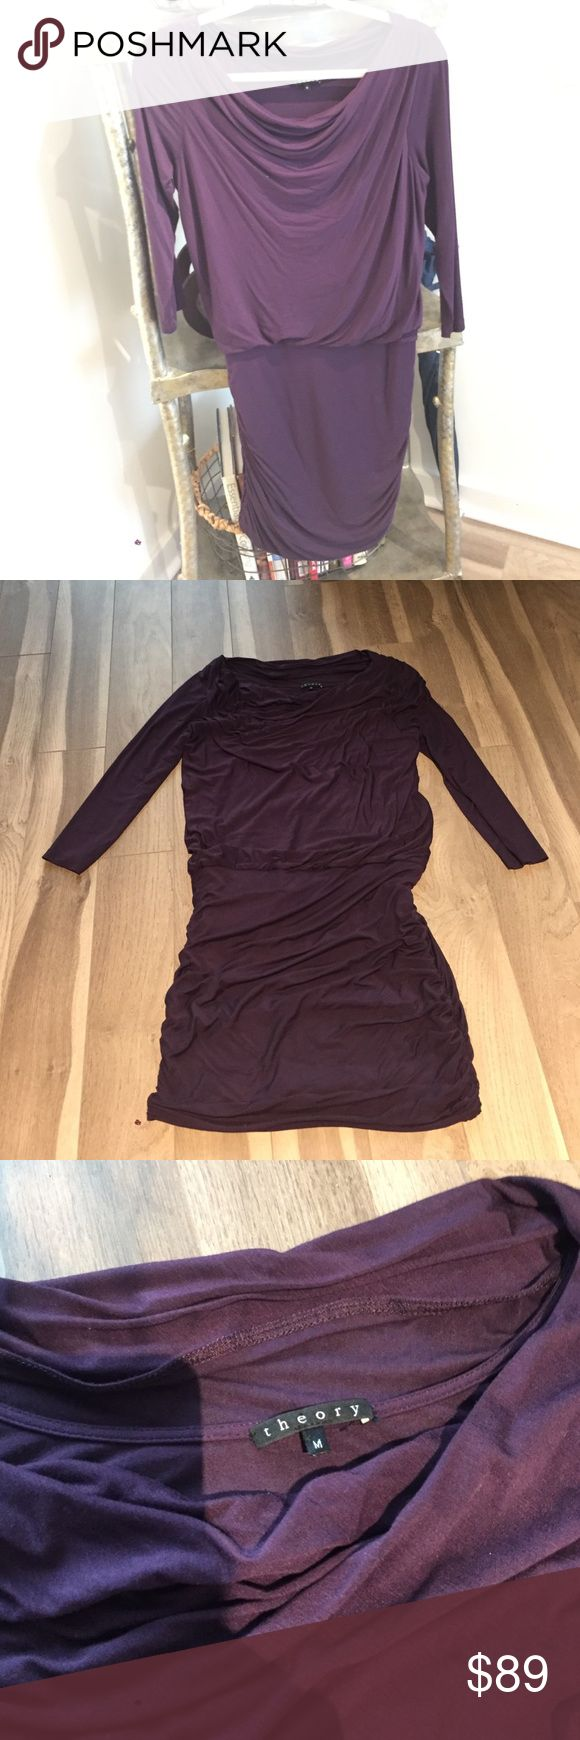 THEORY SCOOP NECK SLEEVED FORM FITTING DRESS Purple maroon colored THEORY dress. Size medium. Sinching on bottom sides and drop NECK. Super soft comfortable material. Specifics listed on the label. Theory Dresses Long Sleeve